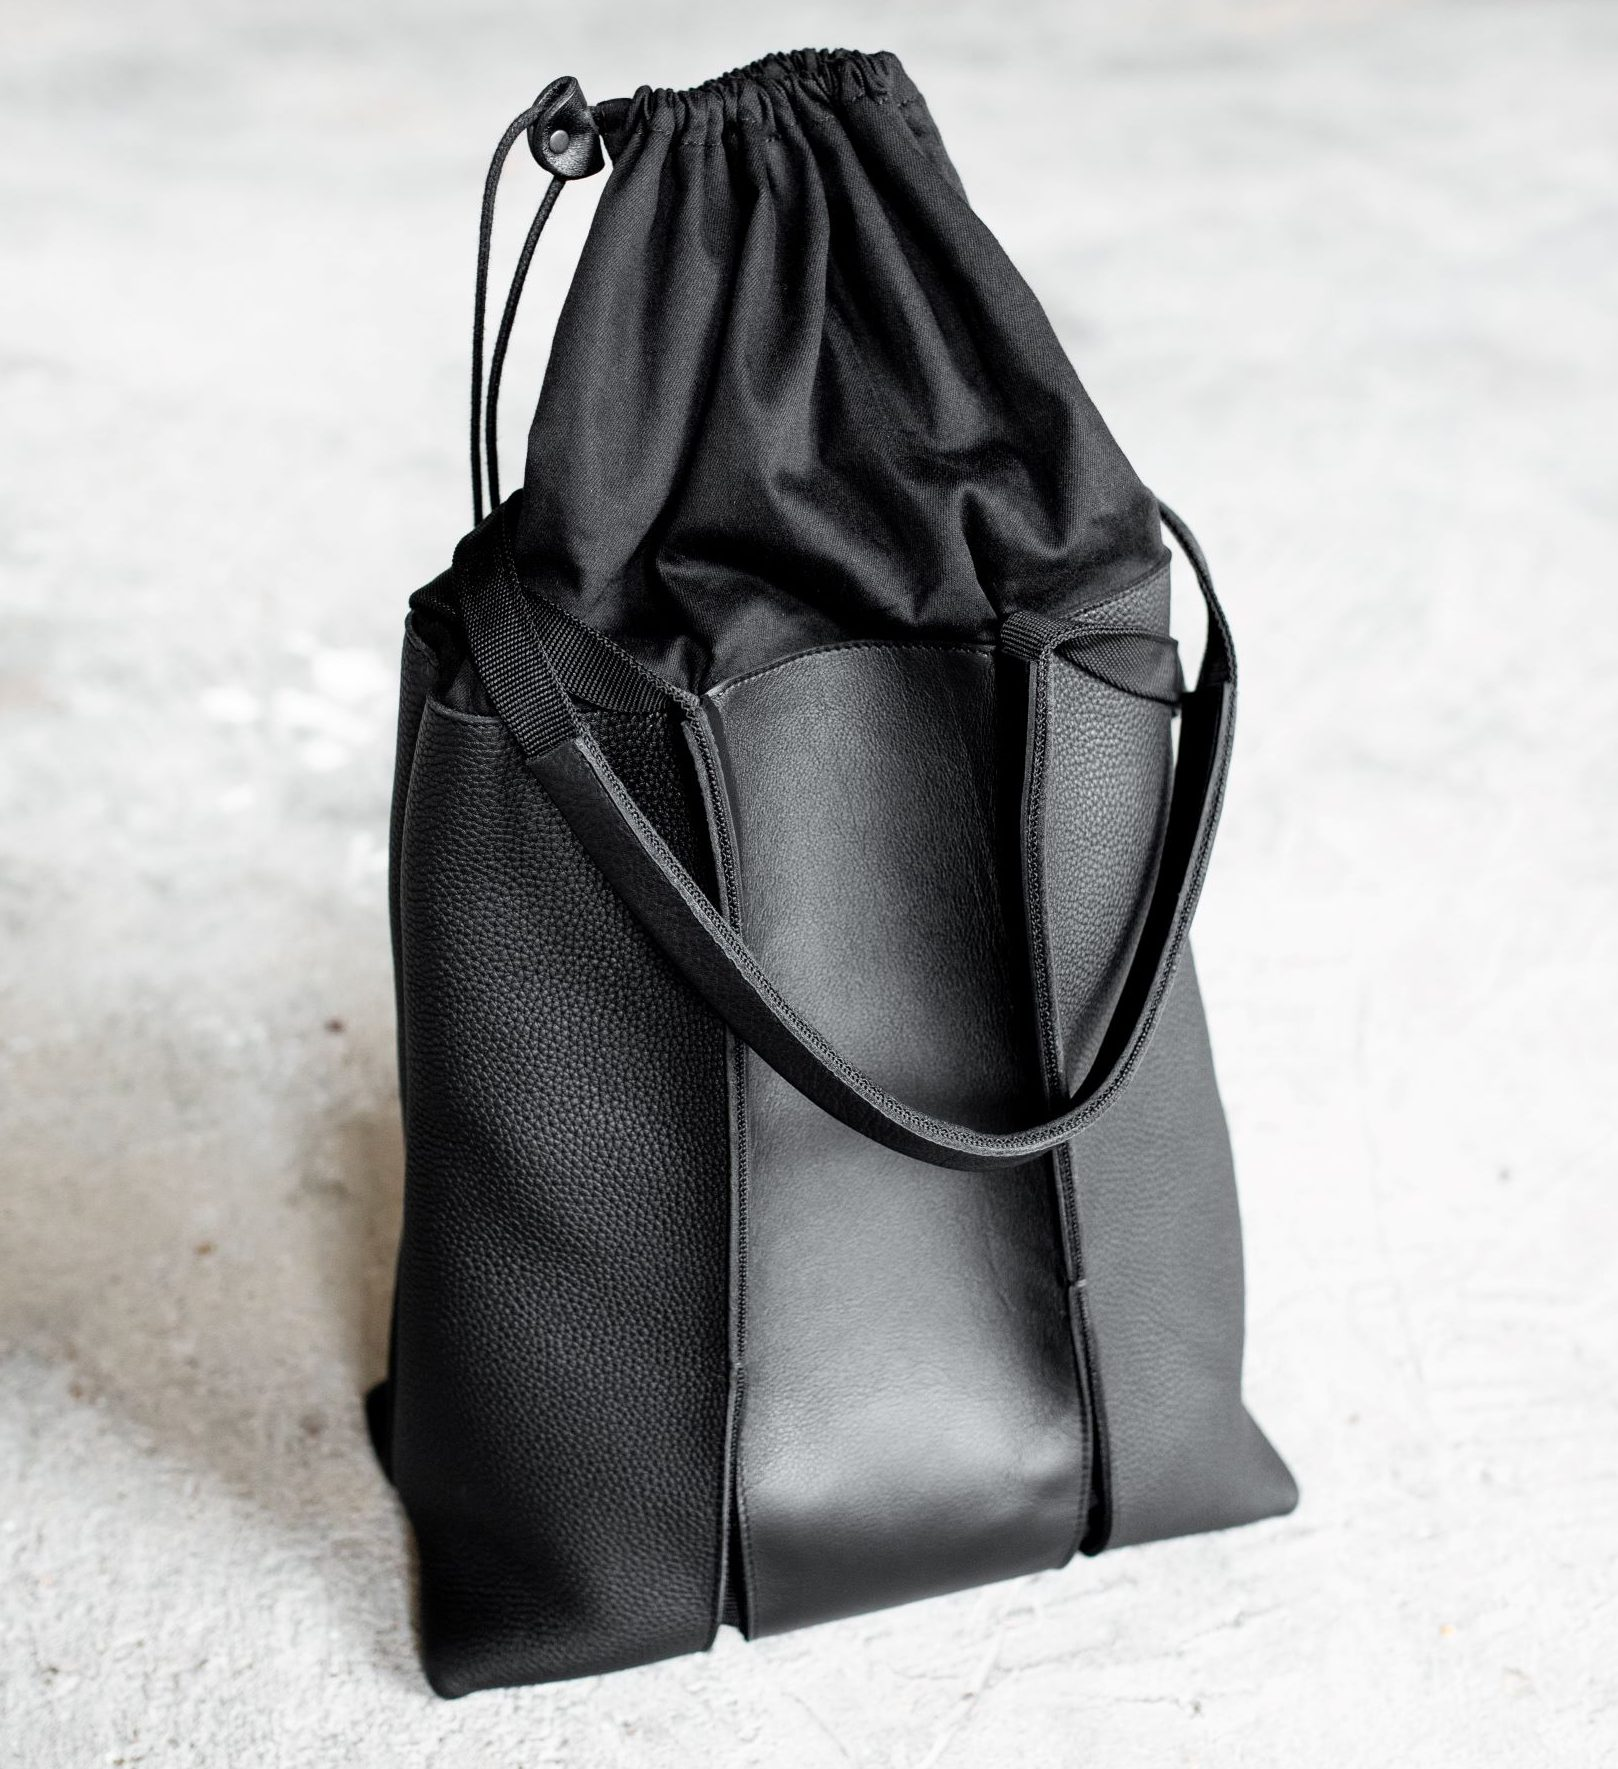 Leather shoulder bag with cotton bag lining by June9Concept